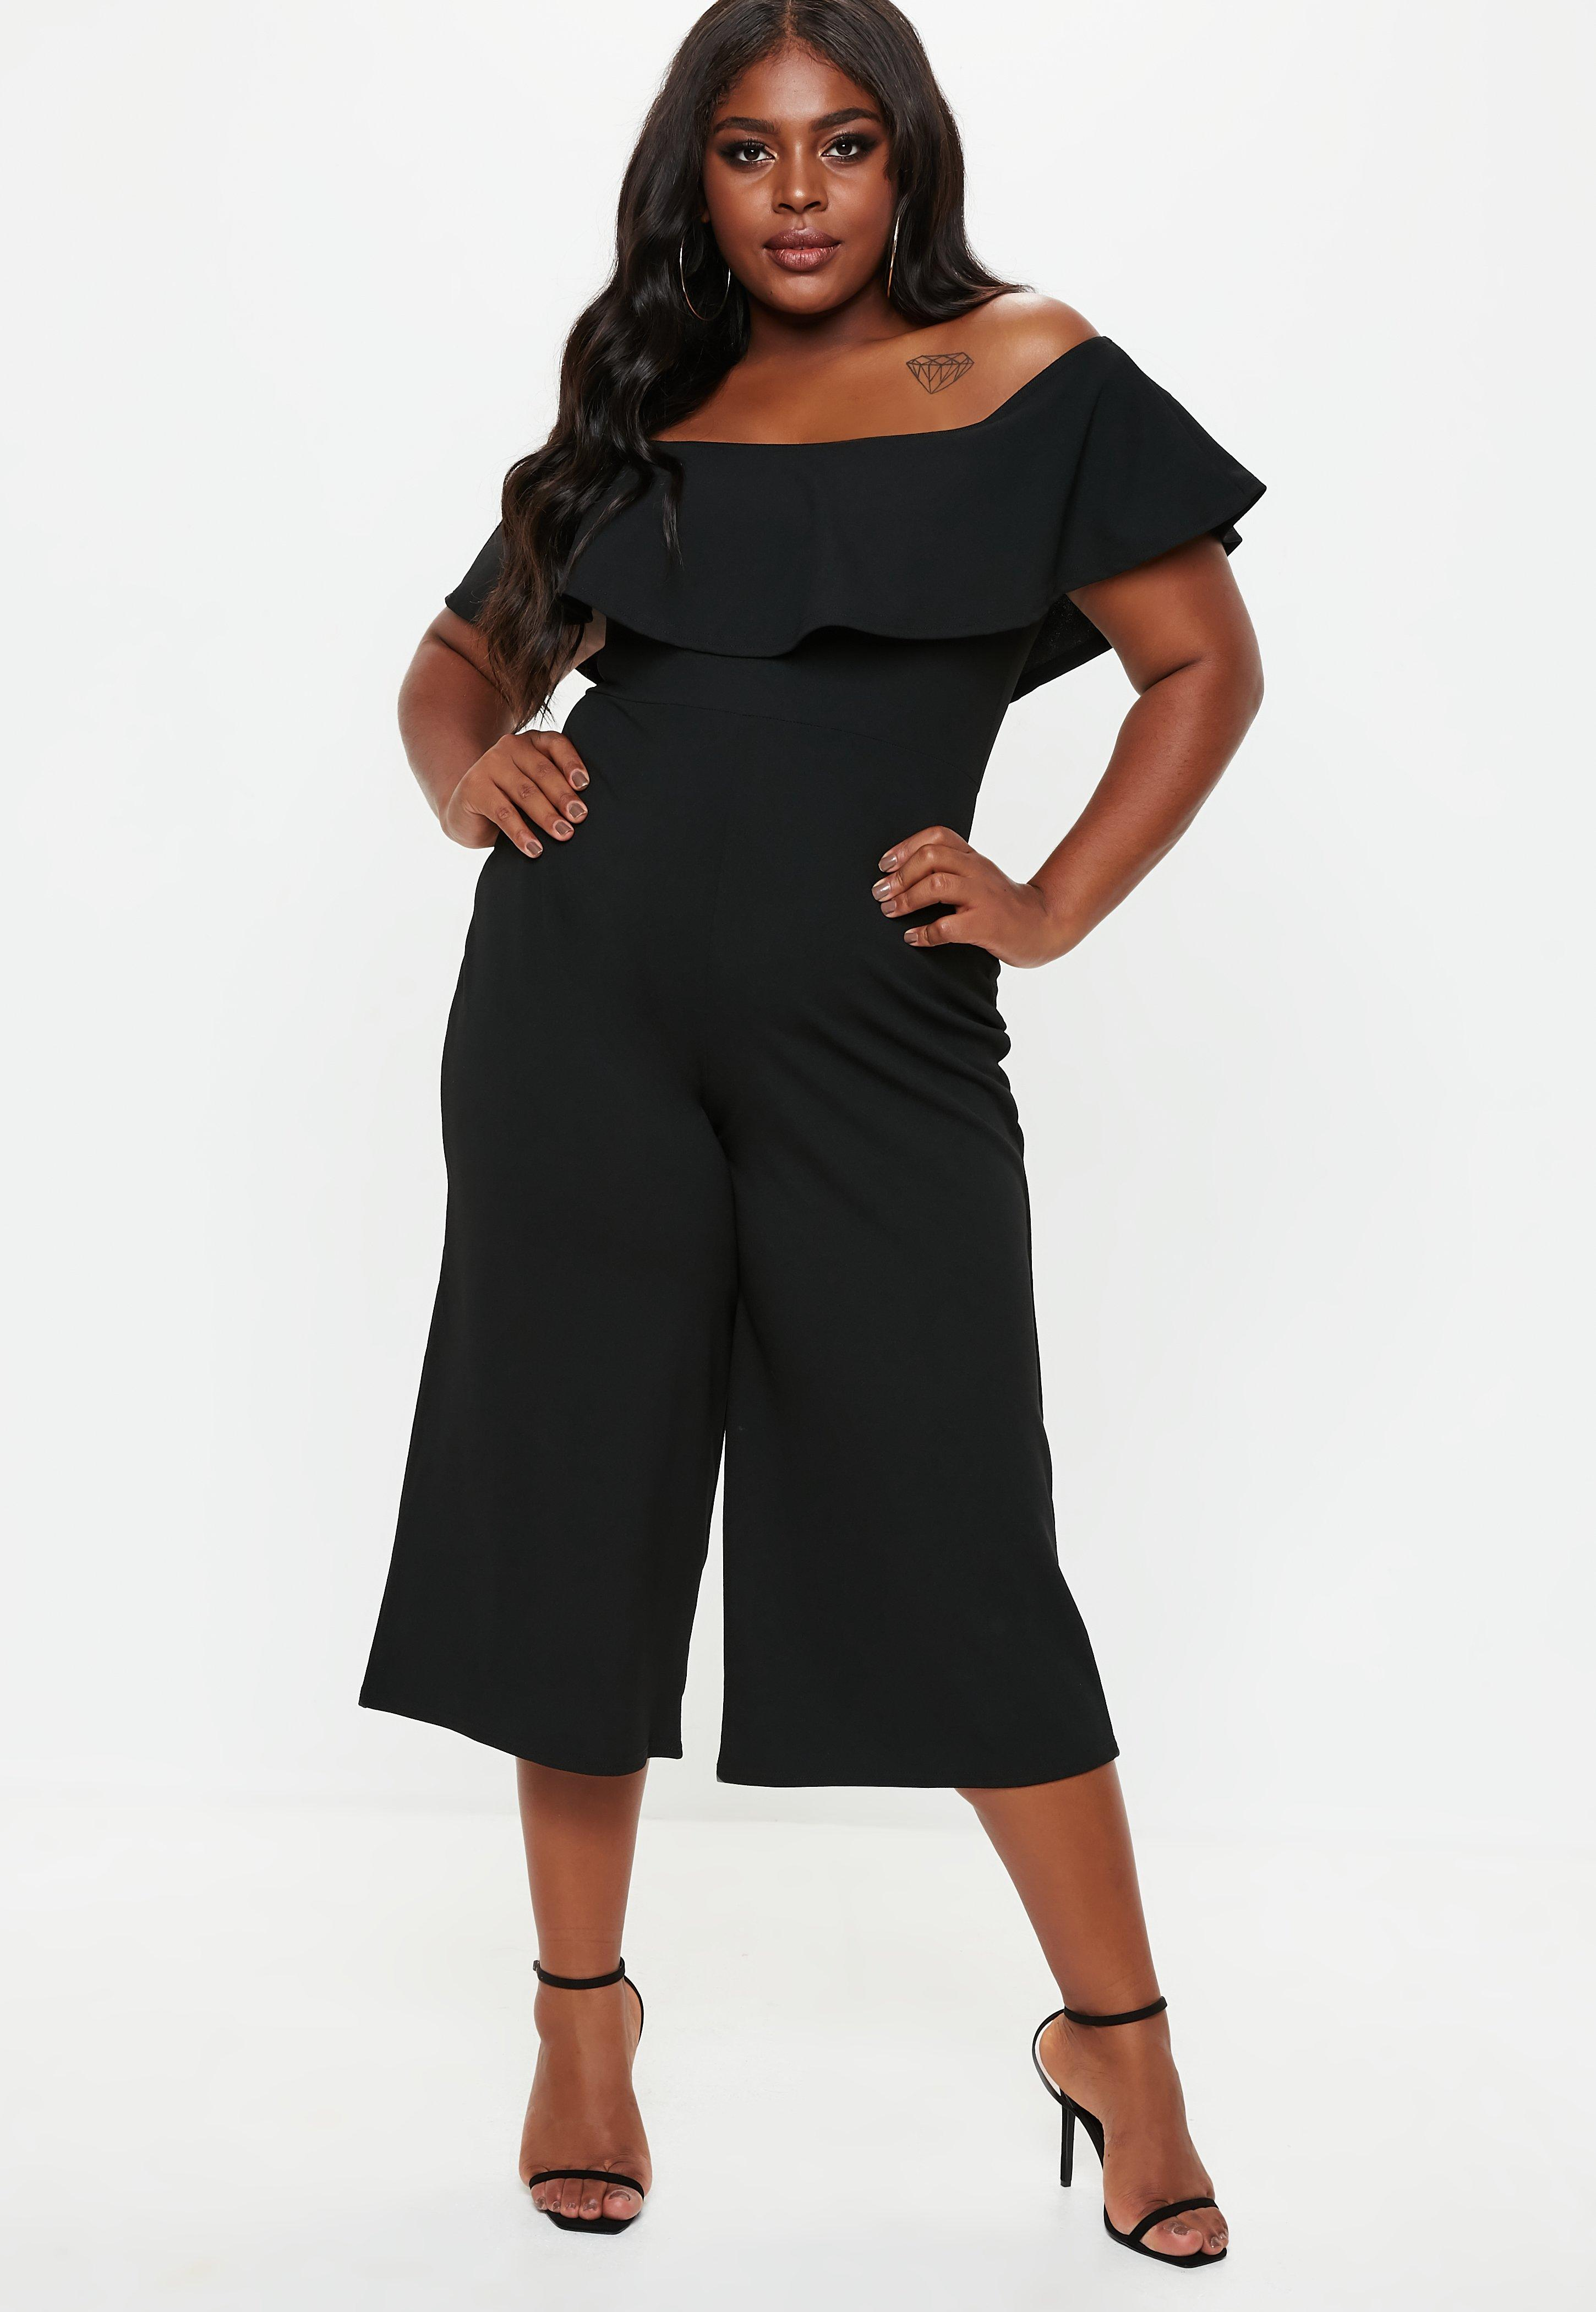 c5eacdcb1cb54 Combinaison   combishort femme grande taille - Missguided